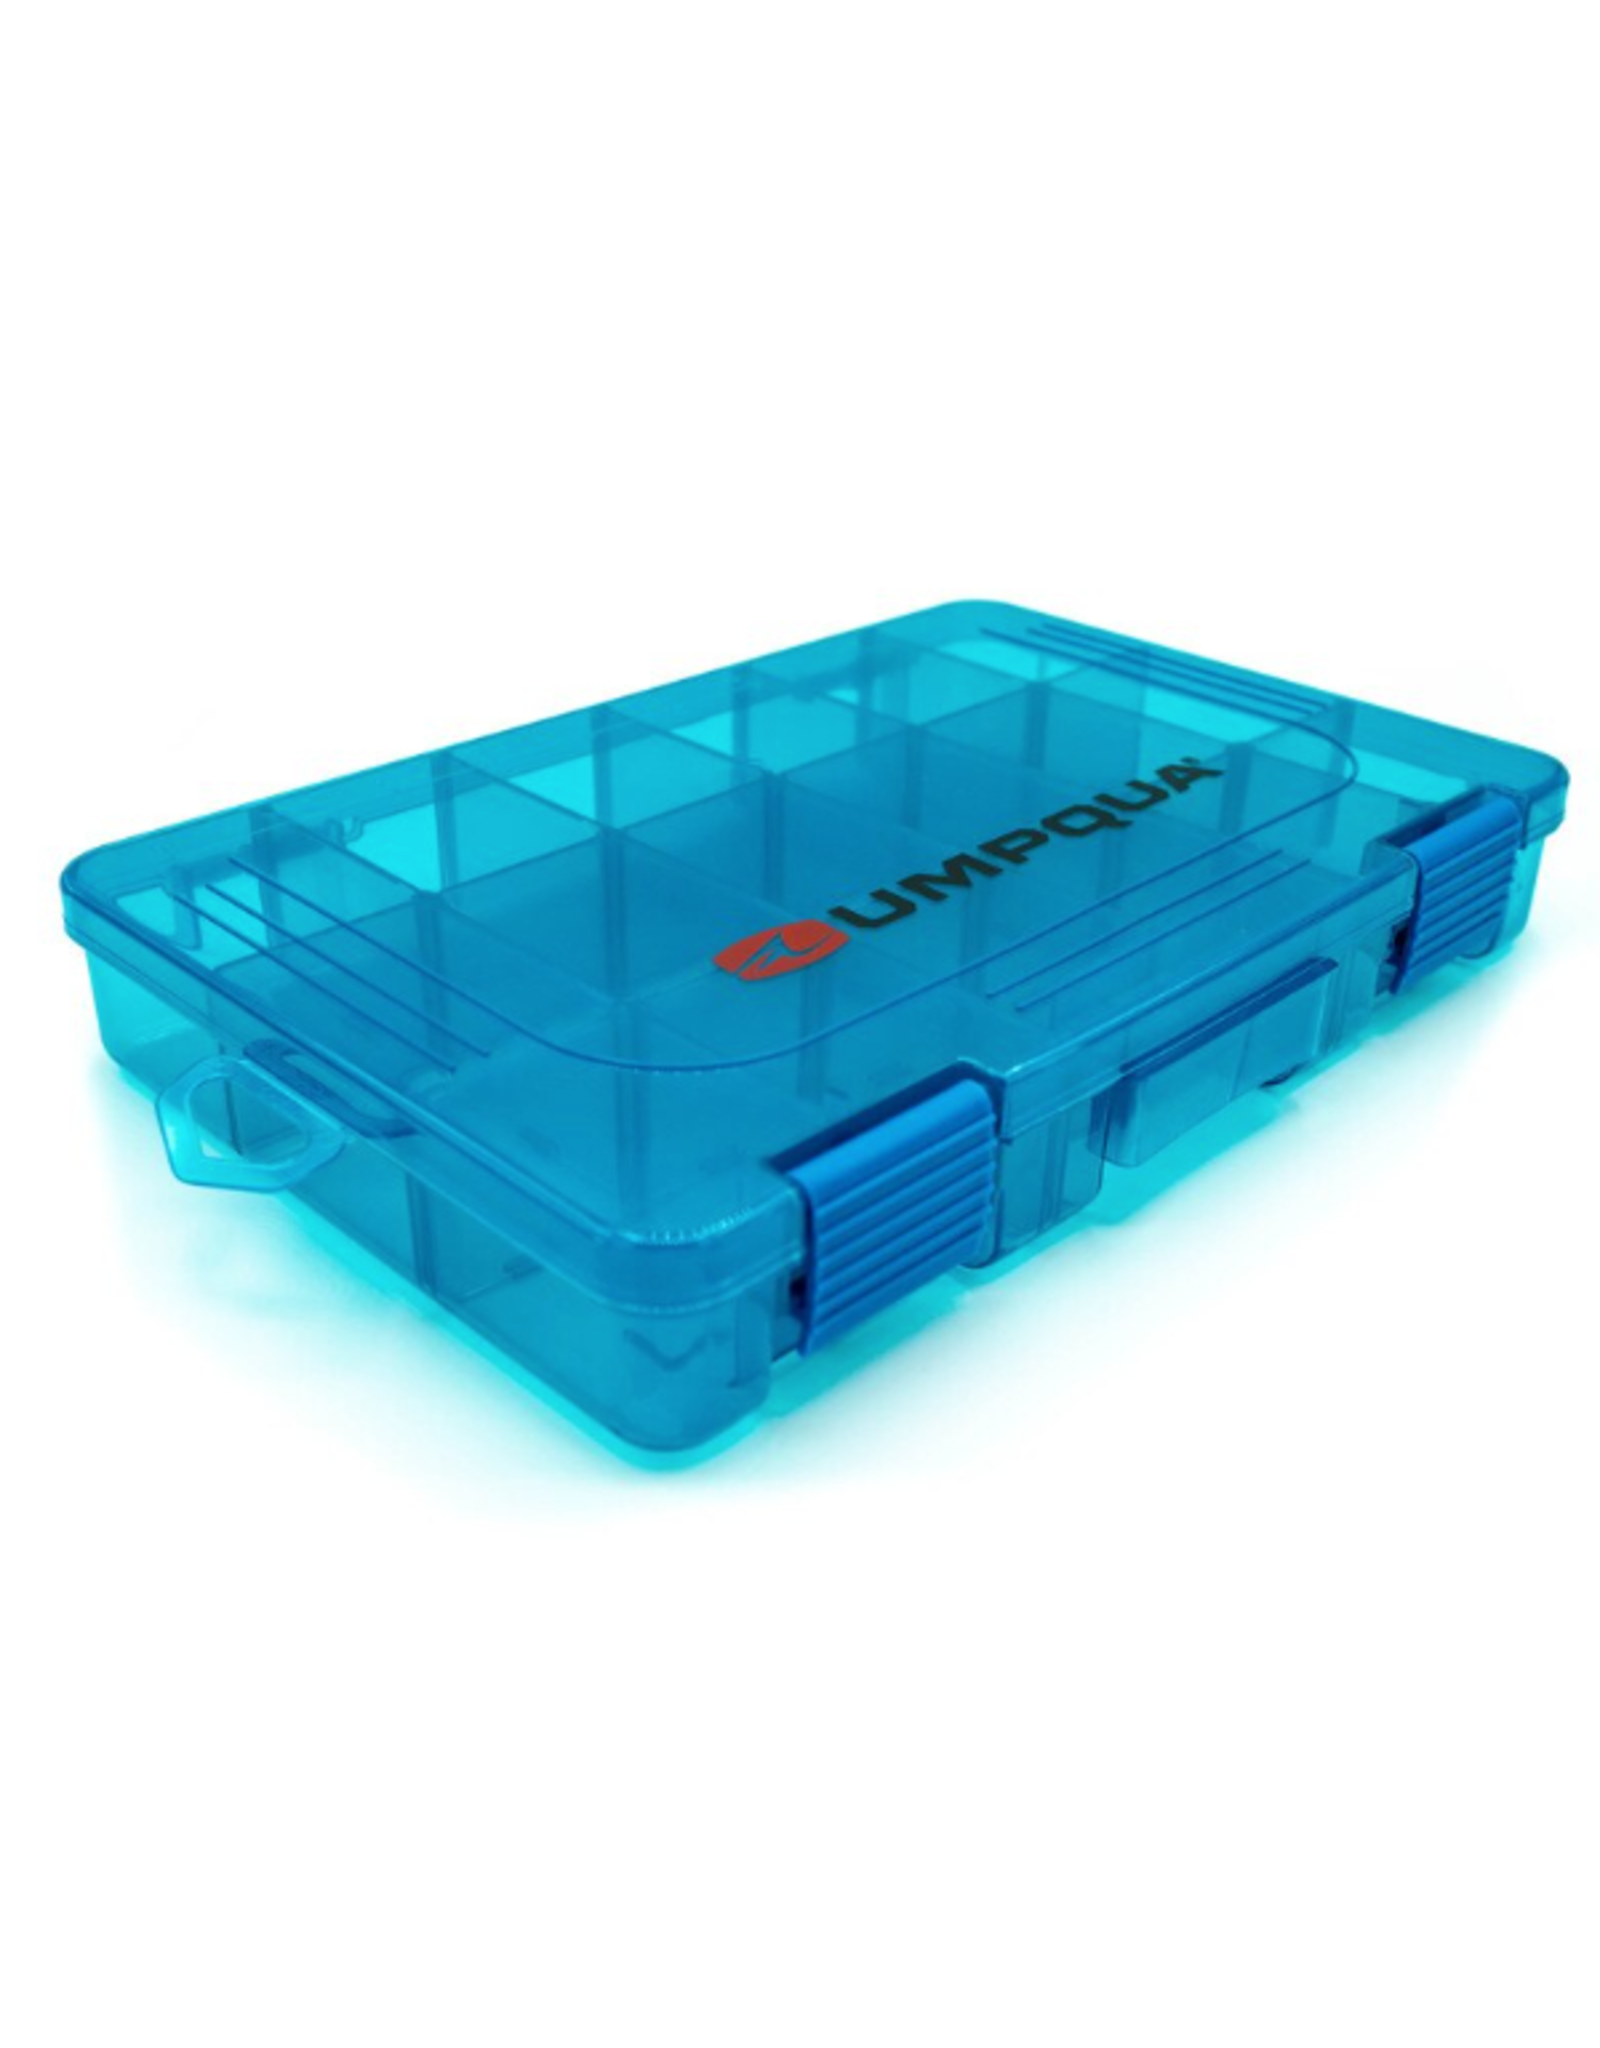 These boxes are a must have for all fisherman to keep fly's and gear organized and ready when needed.